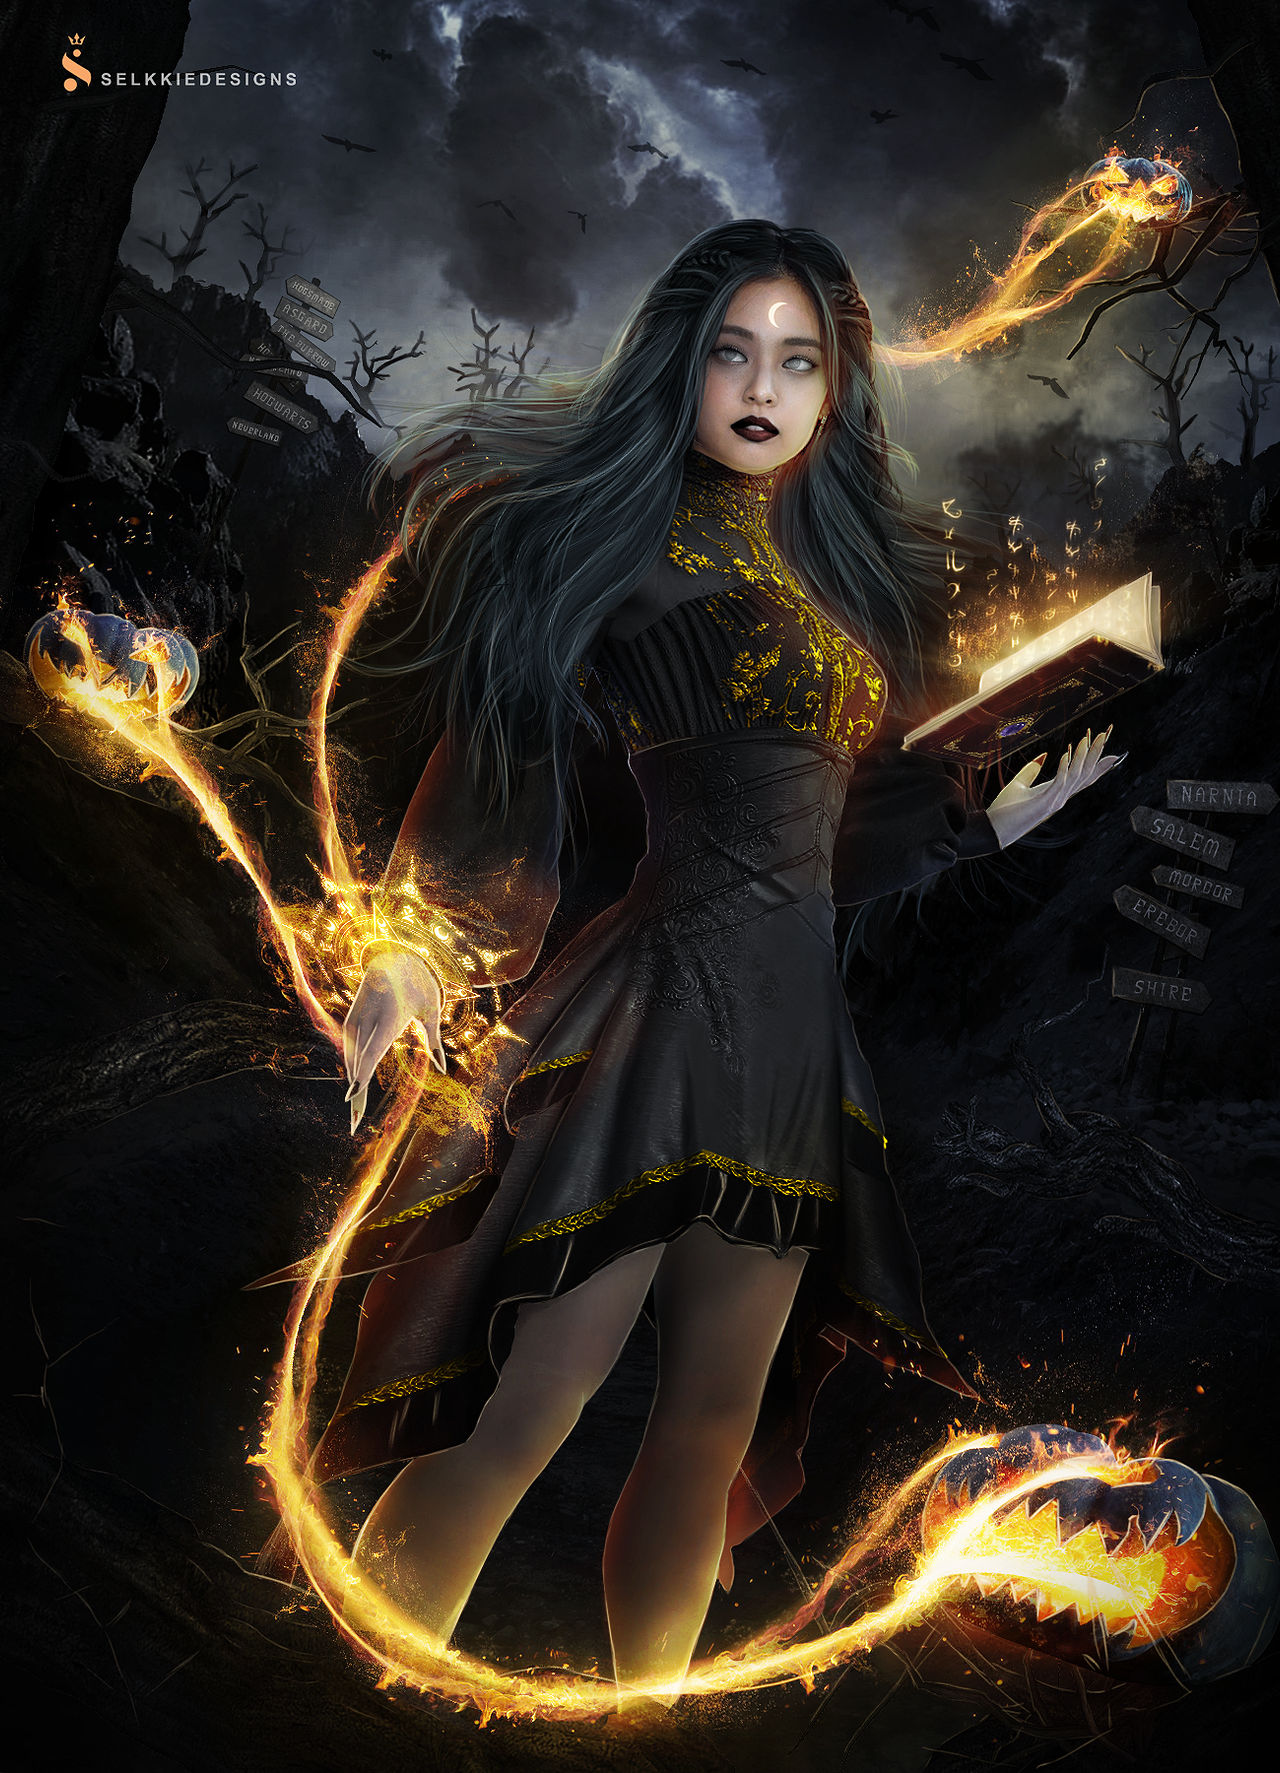 Fire Witch - Jennie Manipulation